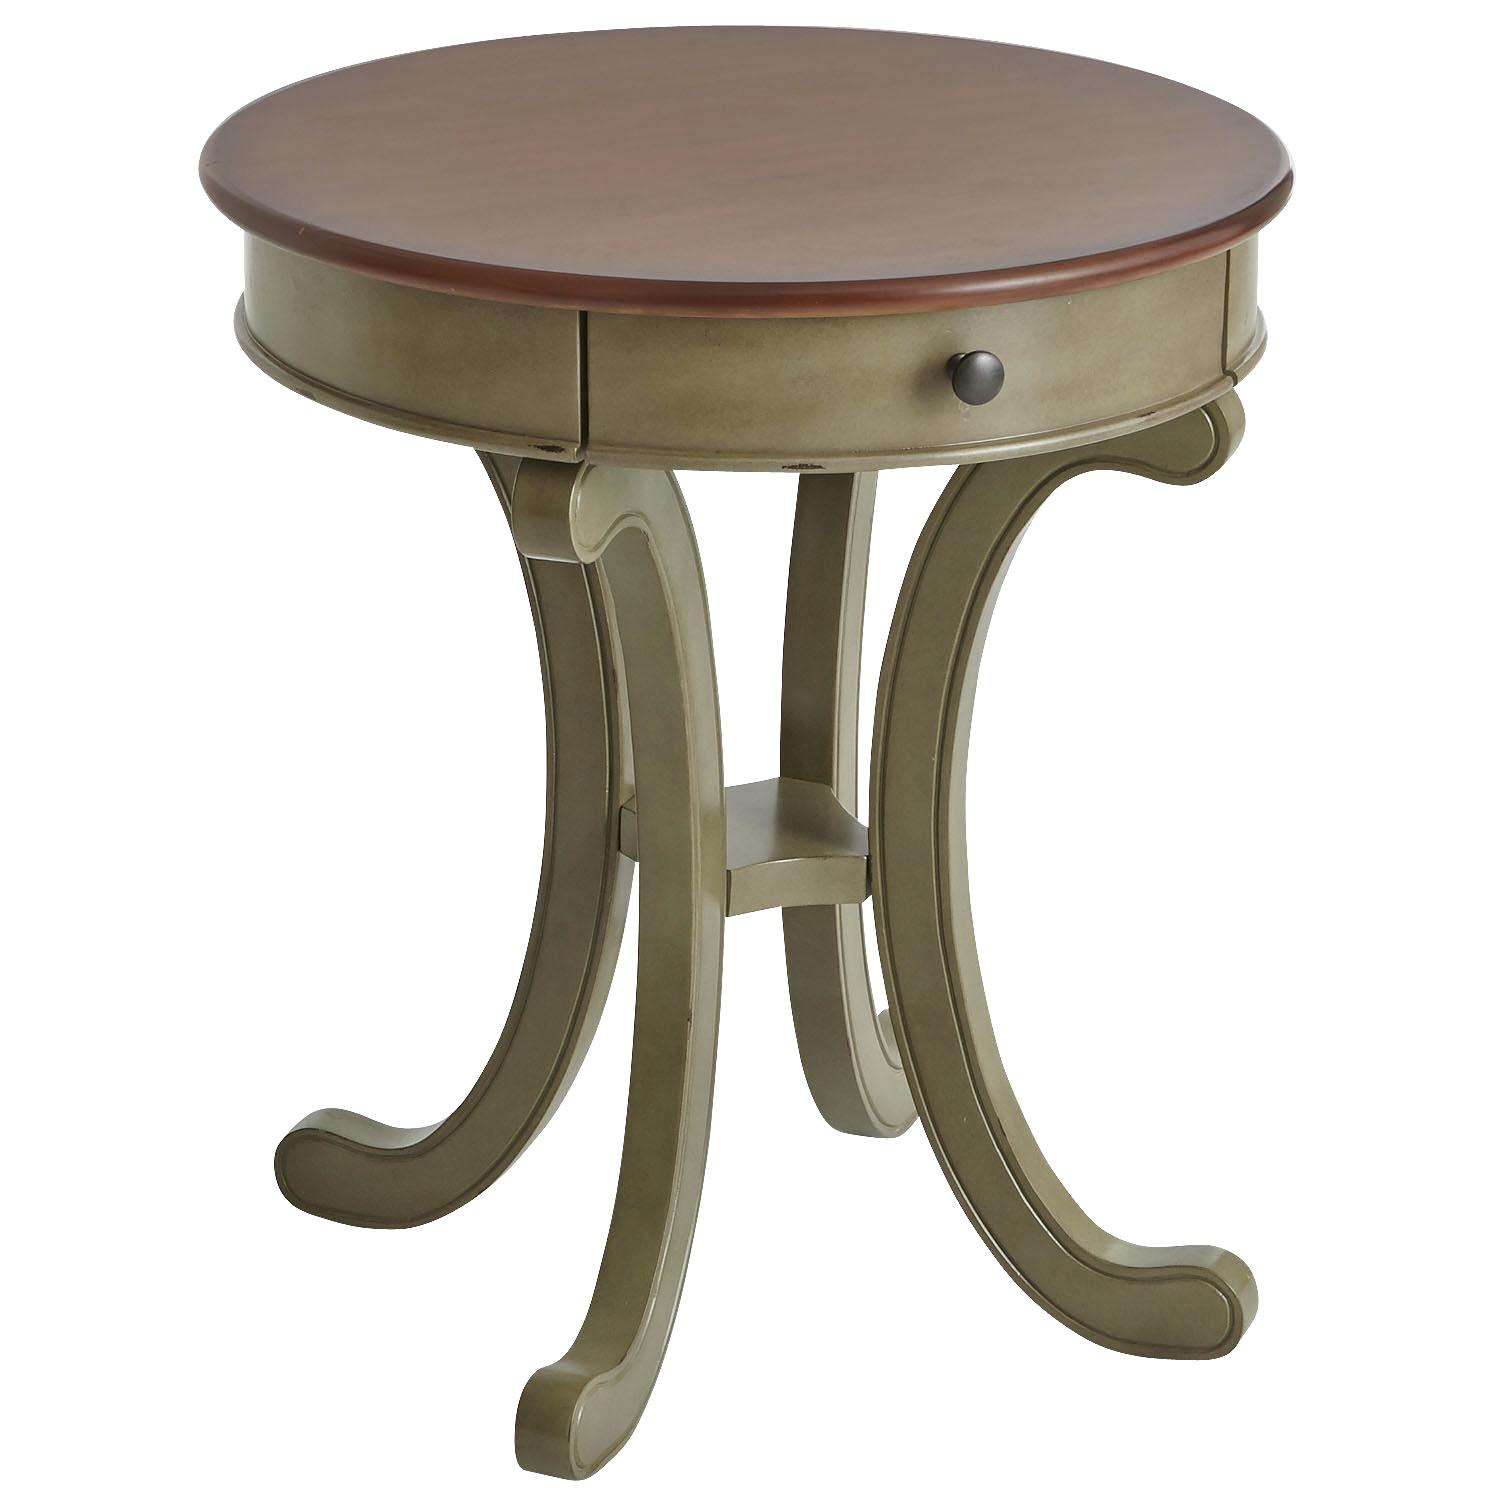 pier accent table andreas lasses tables one anywhere crystal lamps edison bulb lamp bar storage cabinet console plastic cloth decorative boxes with lids solid wood corner small